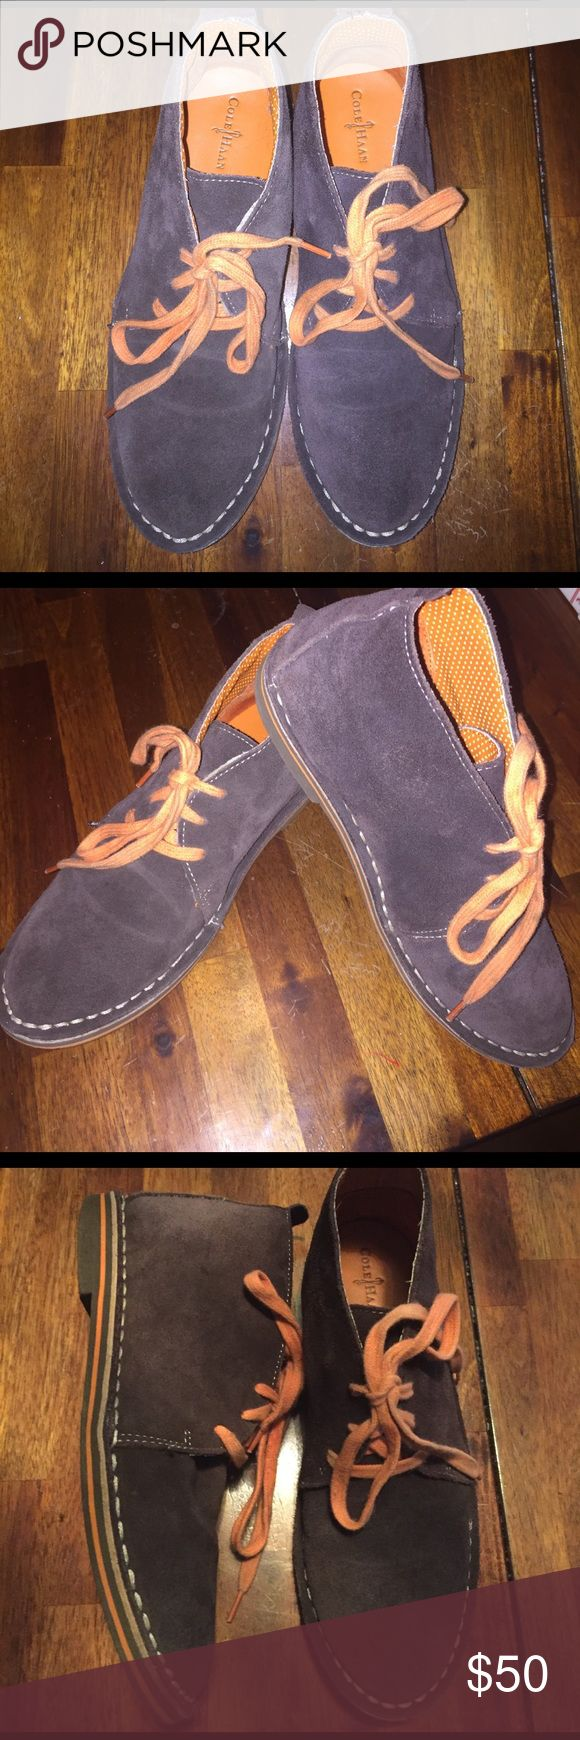 Cole Haan Boys suede Cole Haan Shoes from Niemen Marcus. Gently used. Gorgeous stitching and orange suede with leather insoles. Bottom soles of shoes are gently used. Worn only for special dress occasions for music recitals etc. Cole Haan Shoes Dress Shoes